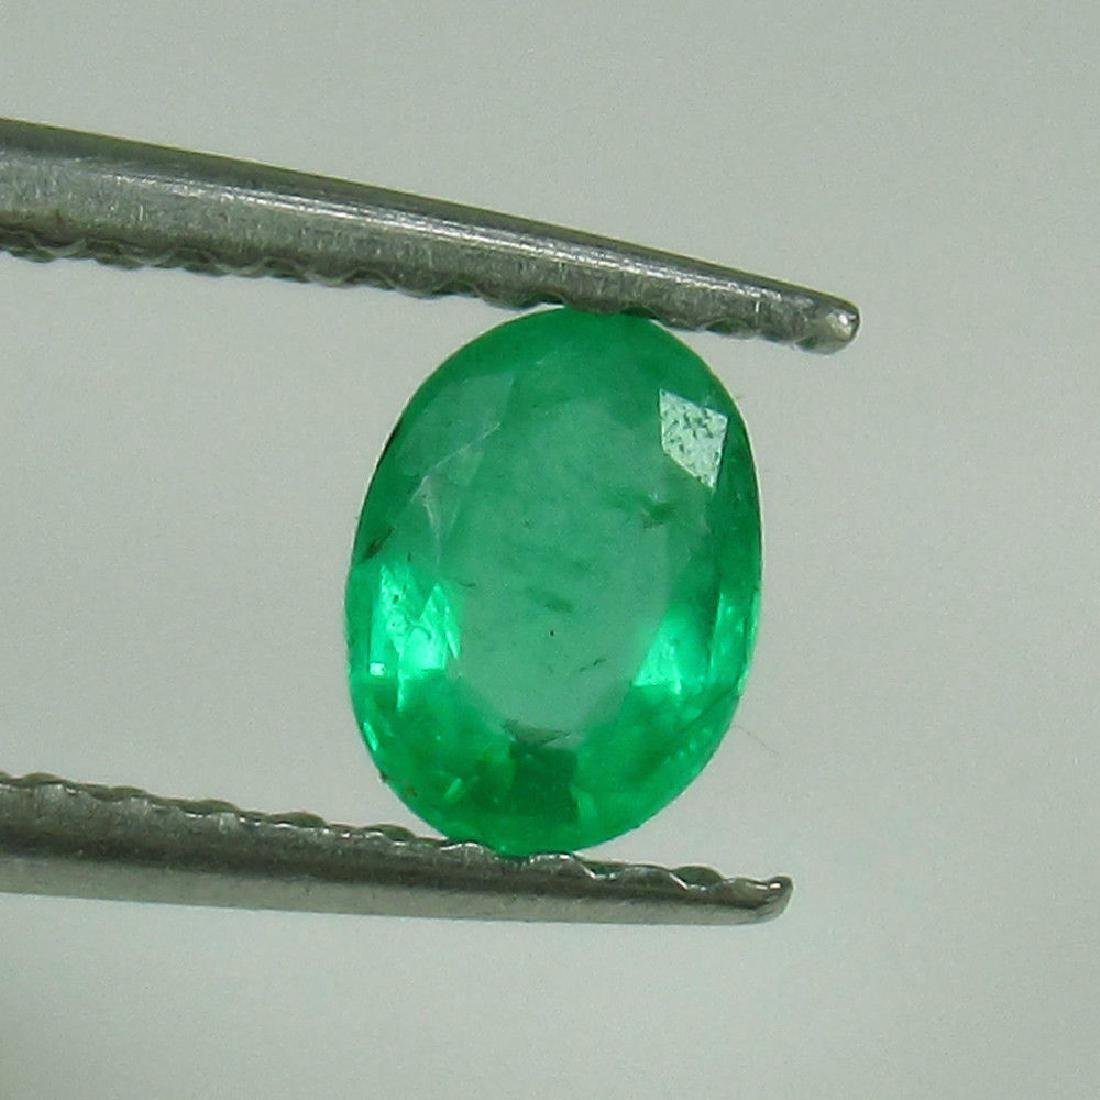 0.29 Ct Genuine Zambian Emerald Nice Oval Cut